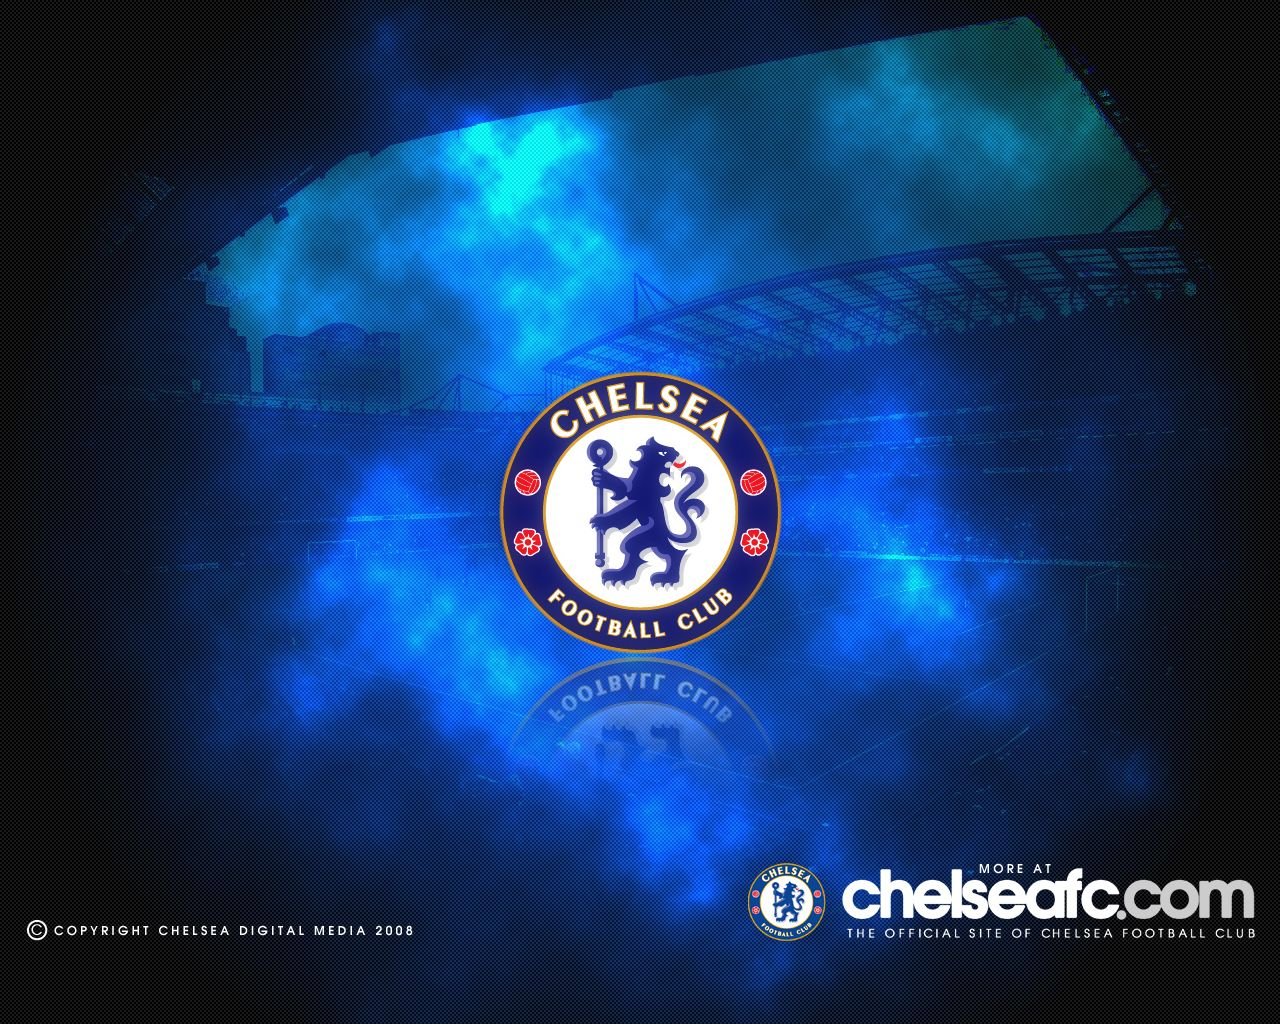 Wallpaper iphone chelsea - Chelsea Fc Wallpapers Wallpaper Cave